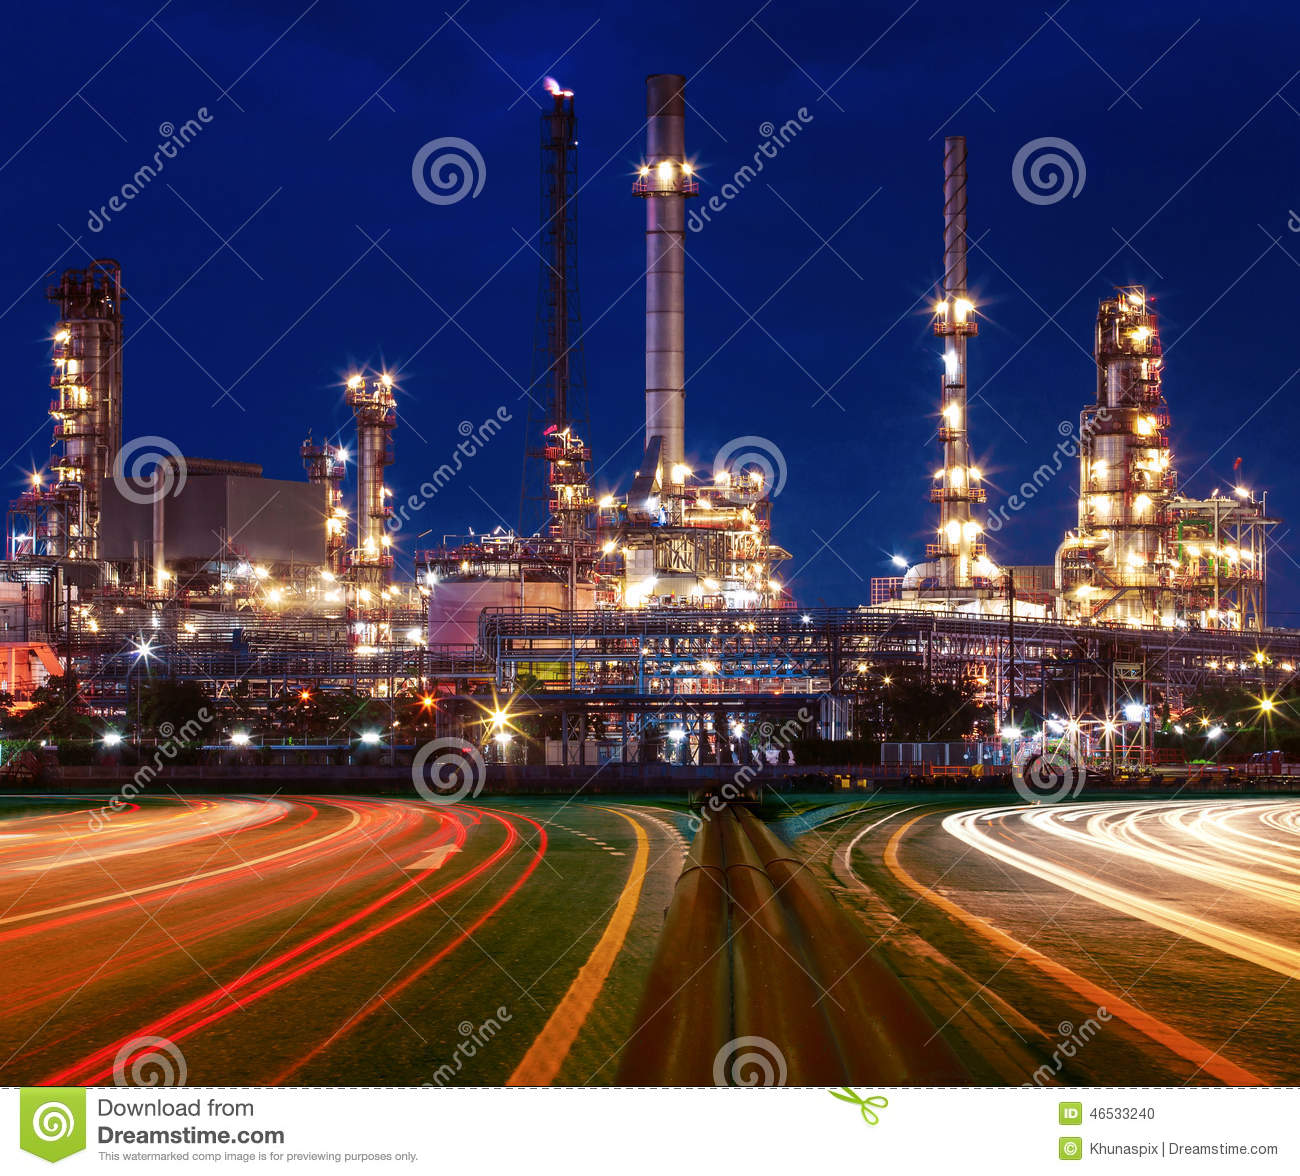 beautiful lighting of oil refinery plant in industry estate agai beautiful lighting